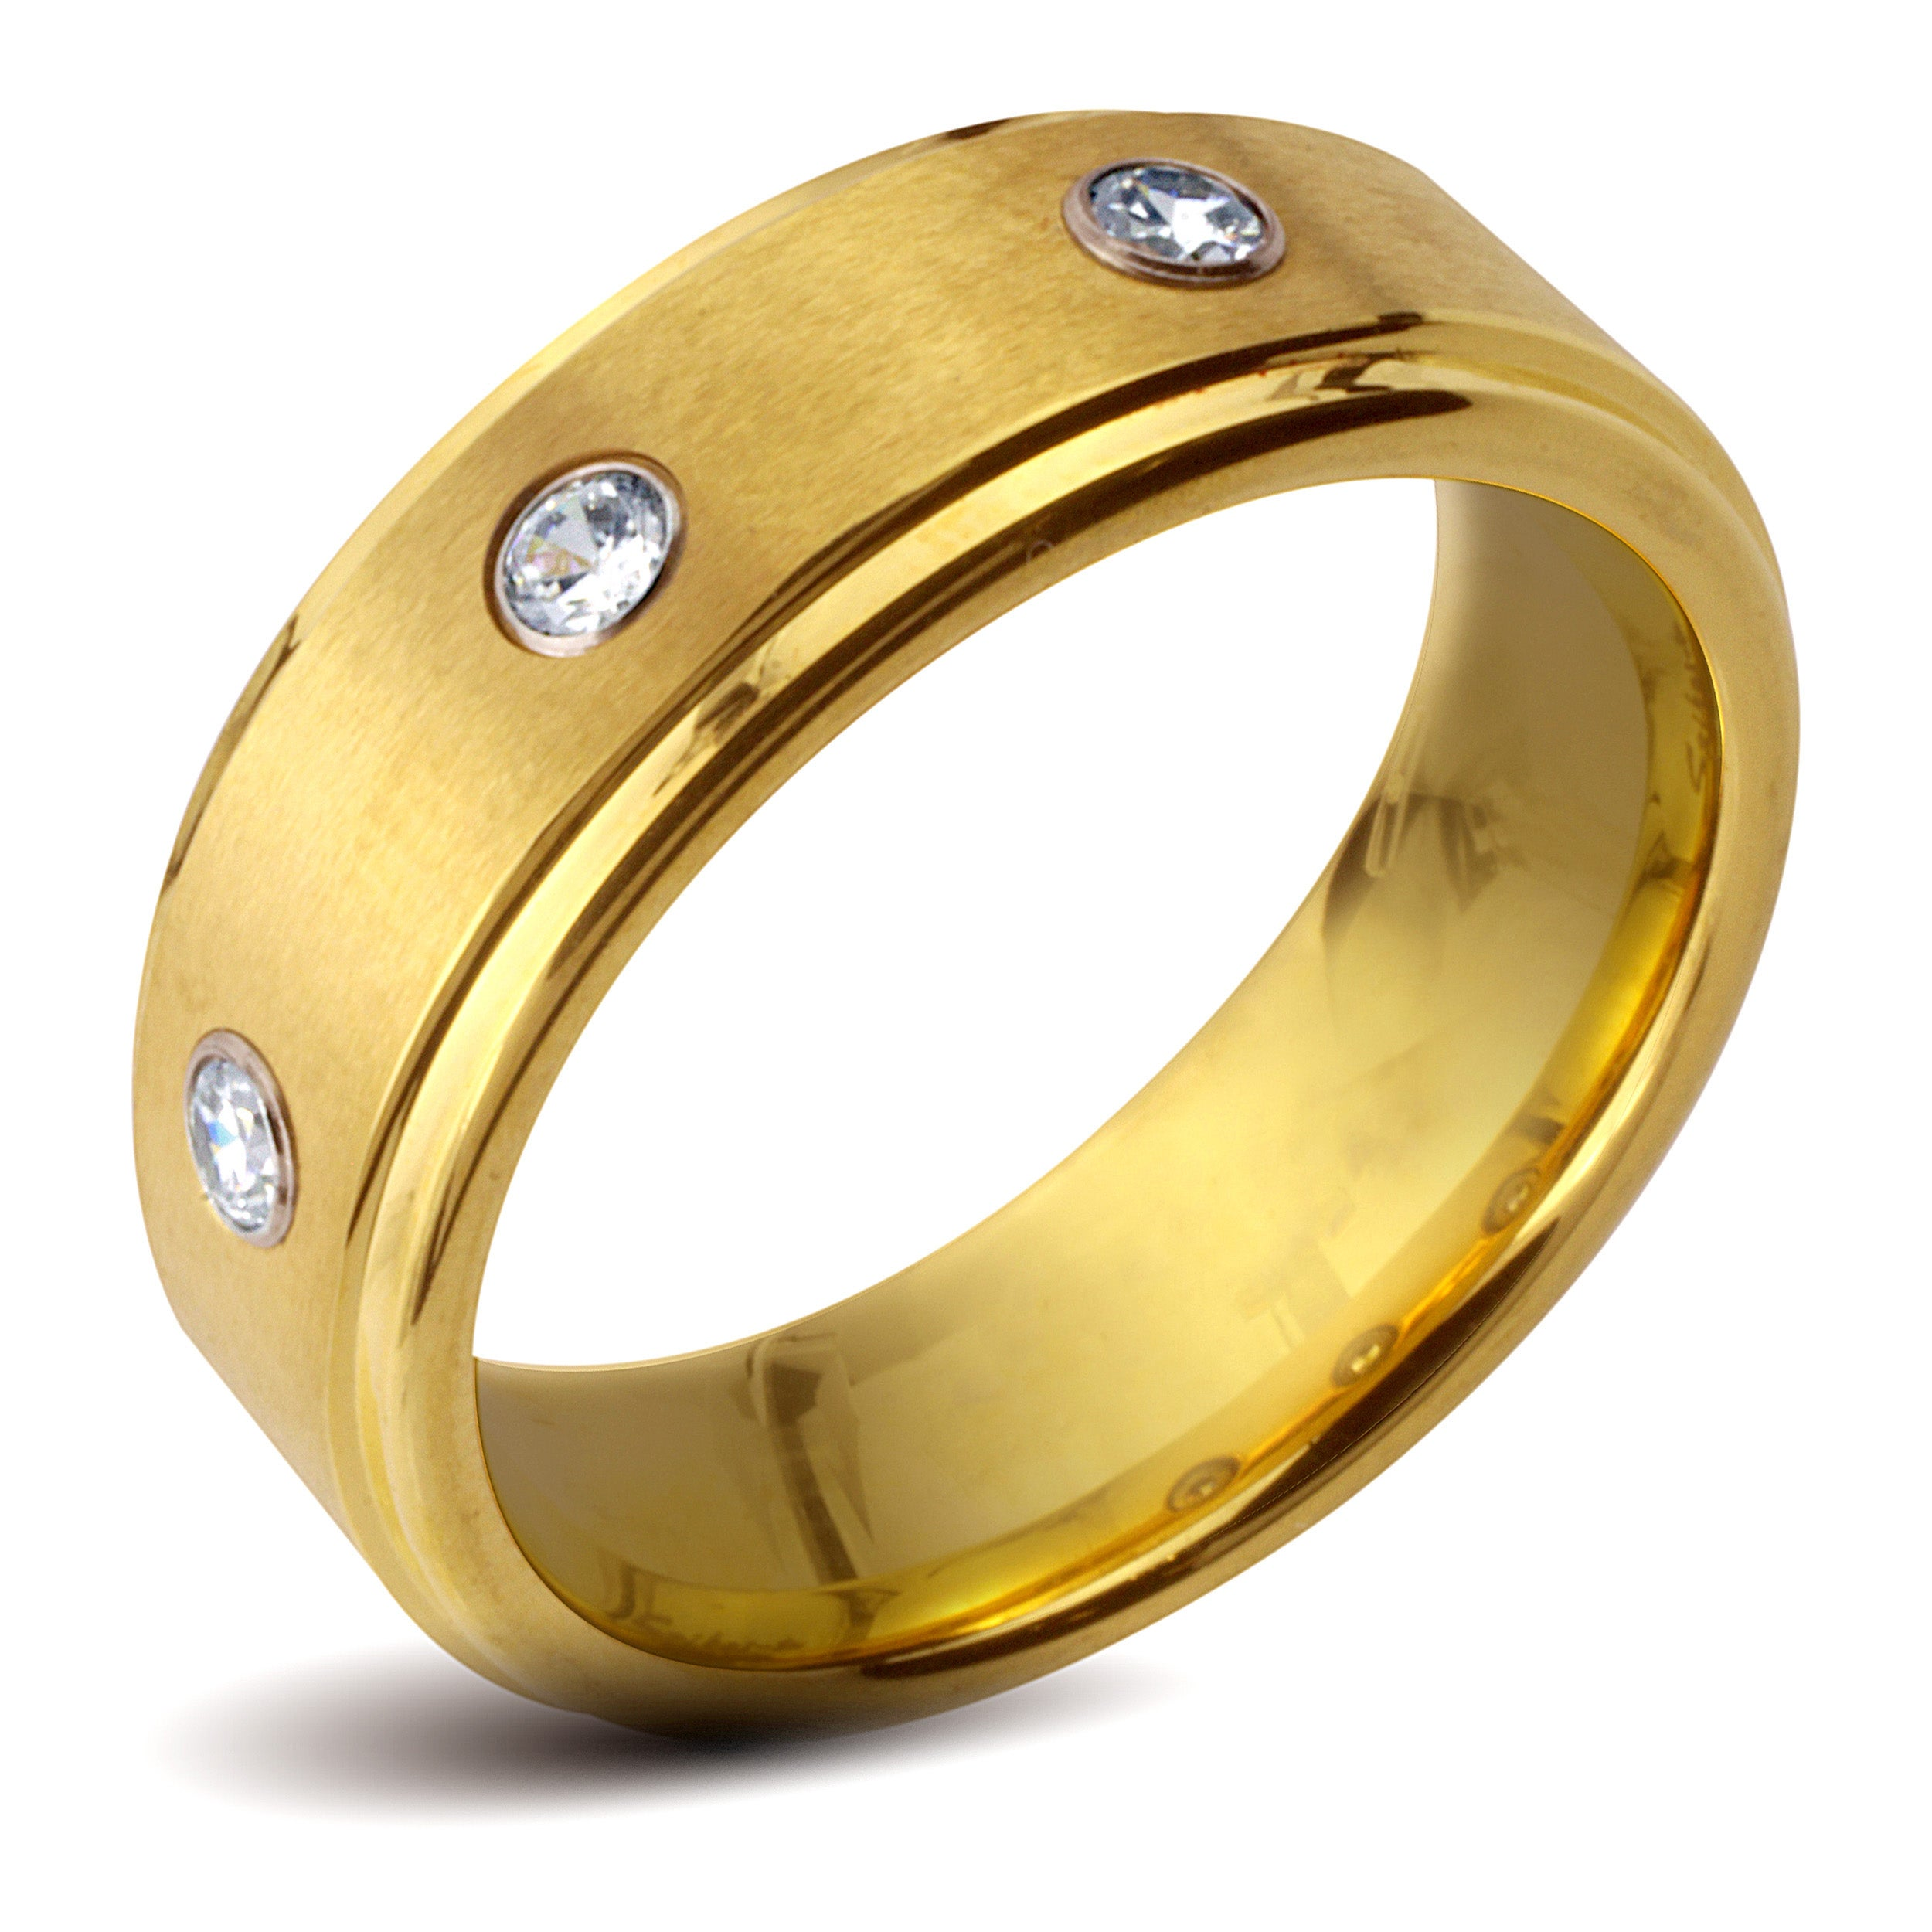 Eziba Collection Goldplated Tungsten Carbide Men's Cubic Zirconia Ring at Sears.com